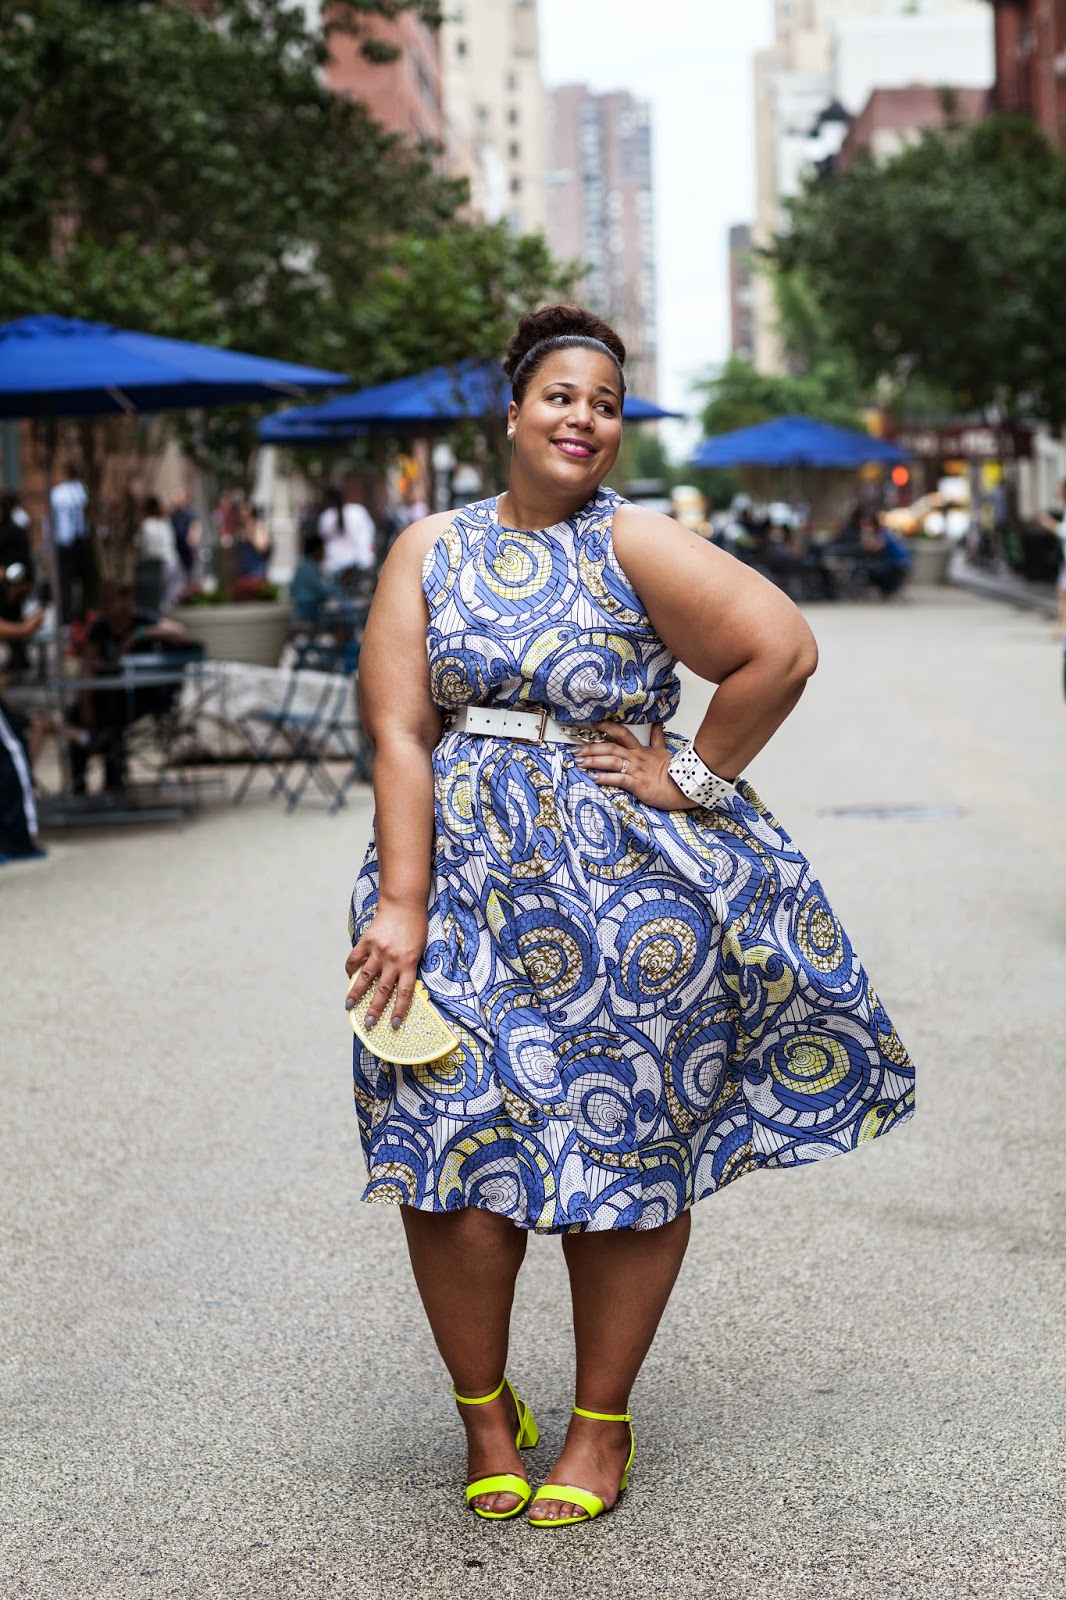 e547a9e4df5 Swooning in NYC - Garnerstyle